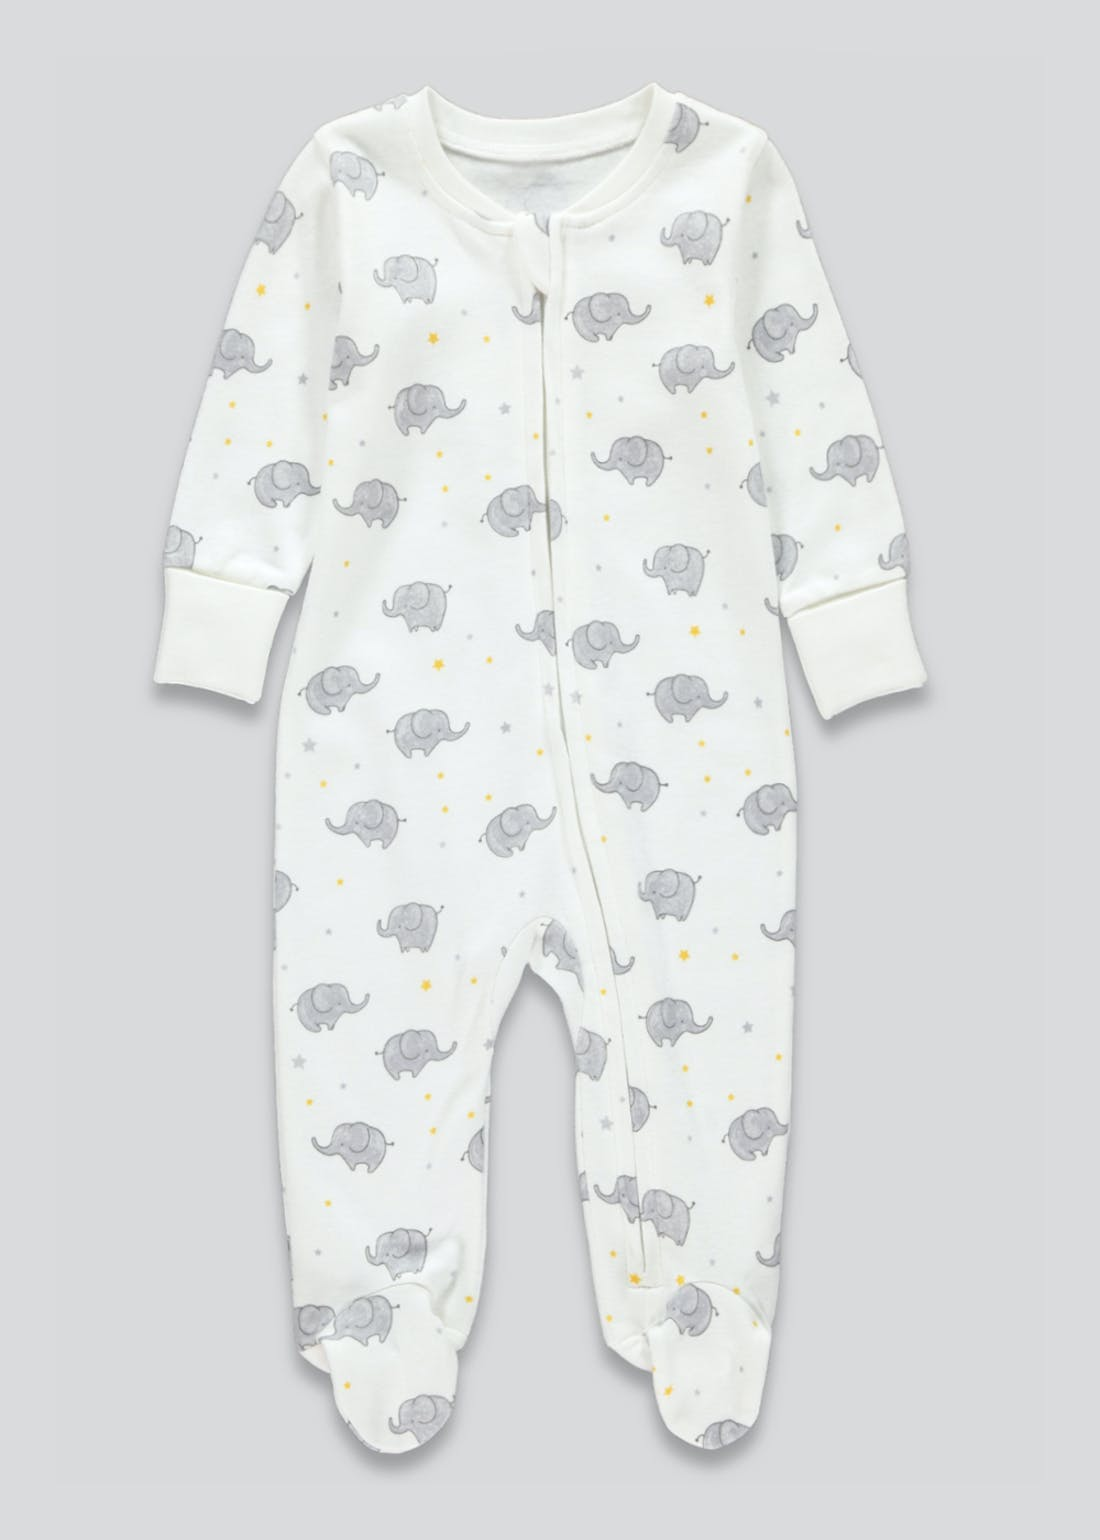 Unisex Elephant Zip Up Baby Grow (Tiny Baby-9mths)